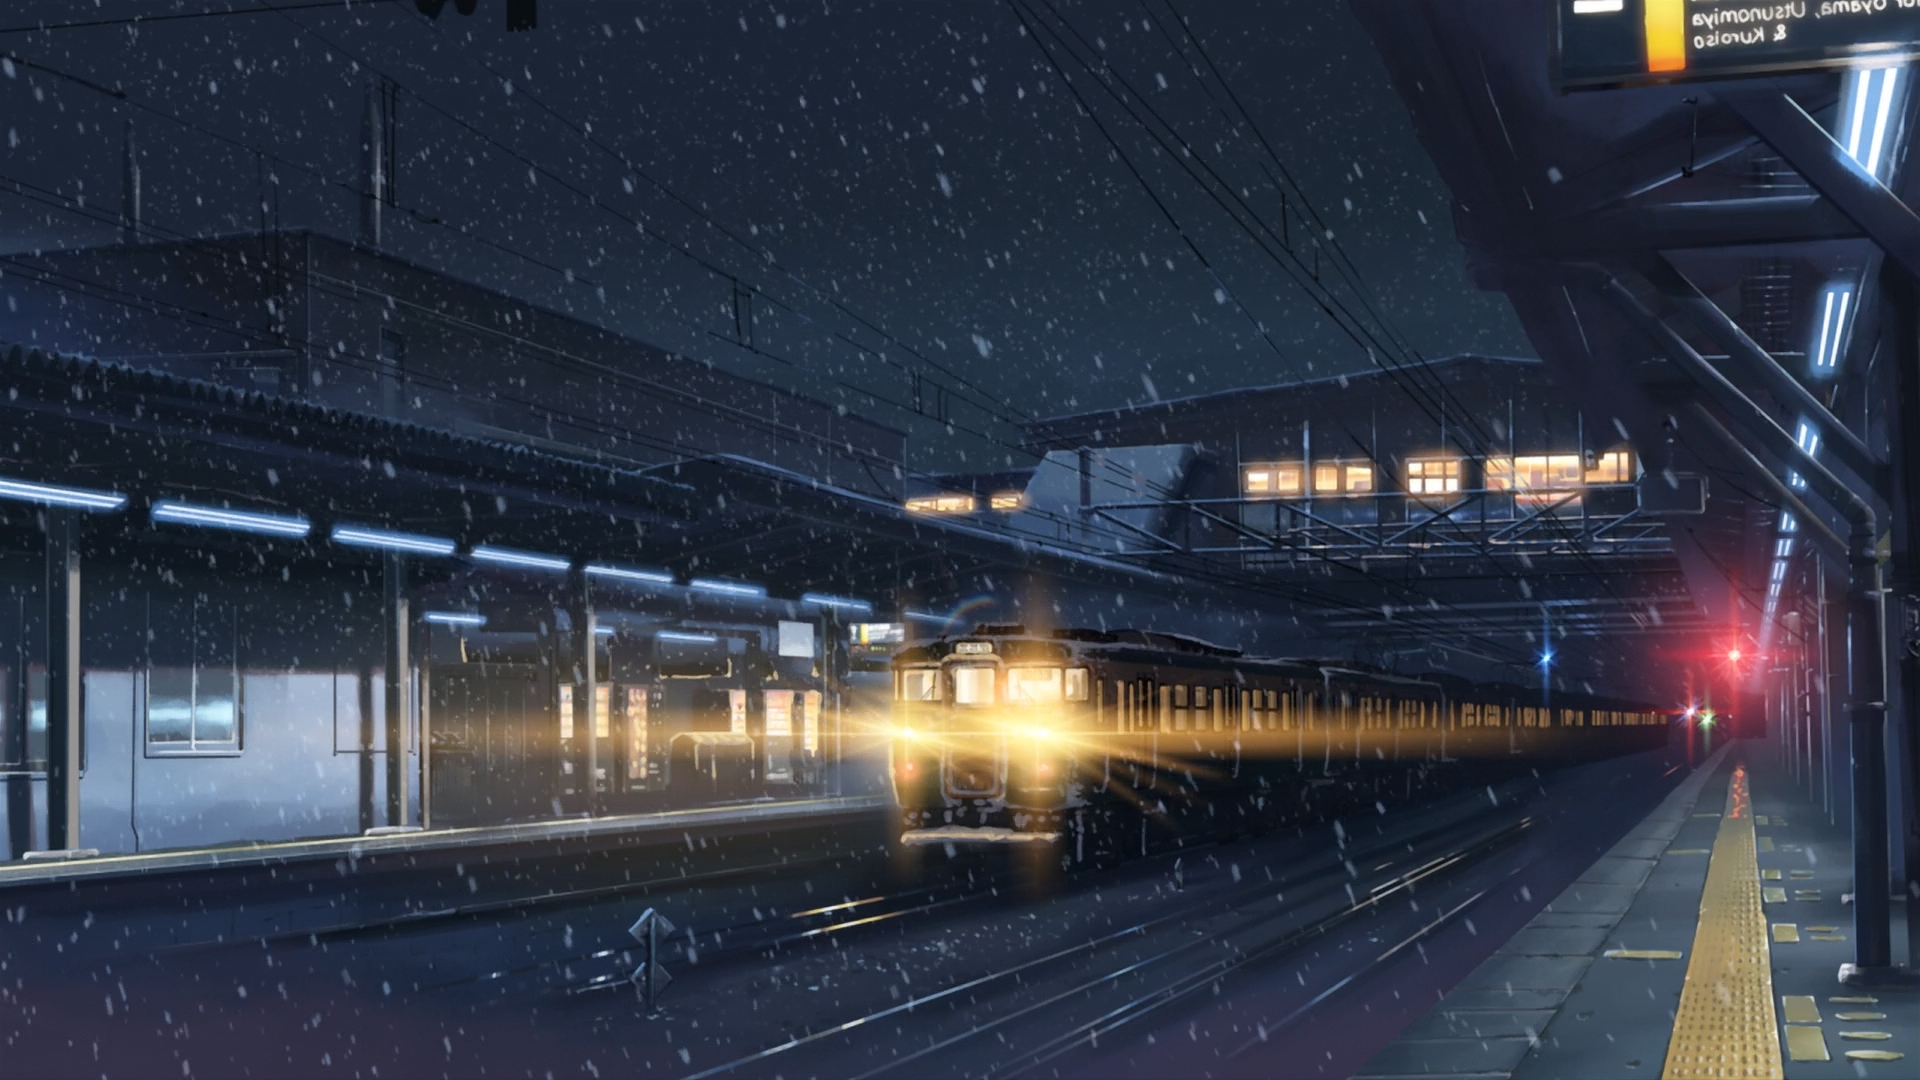 34098 Anime Winter Lights Train Station Snow Night